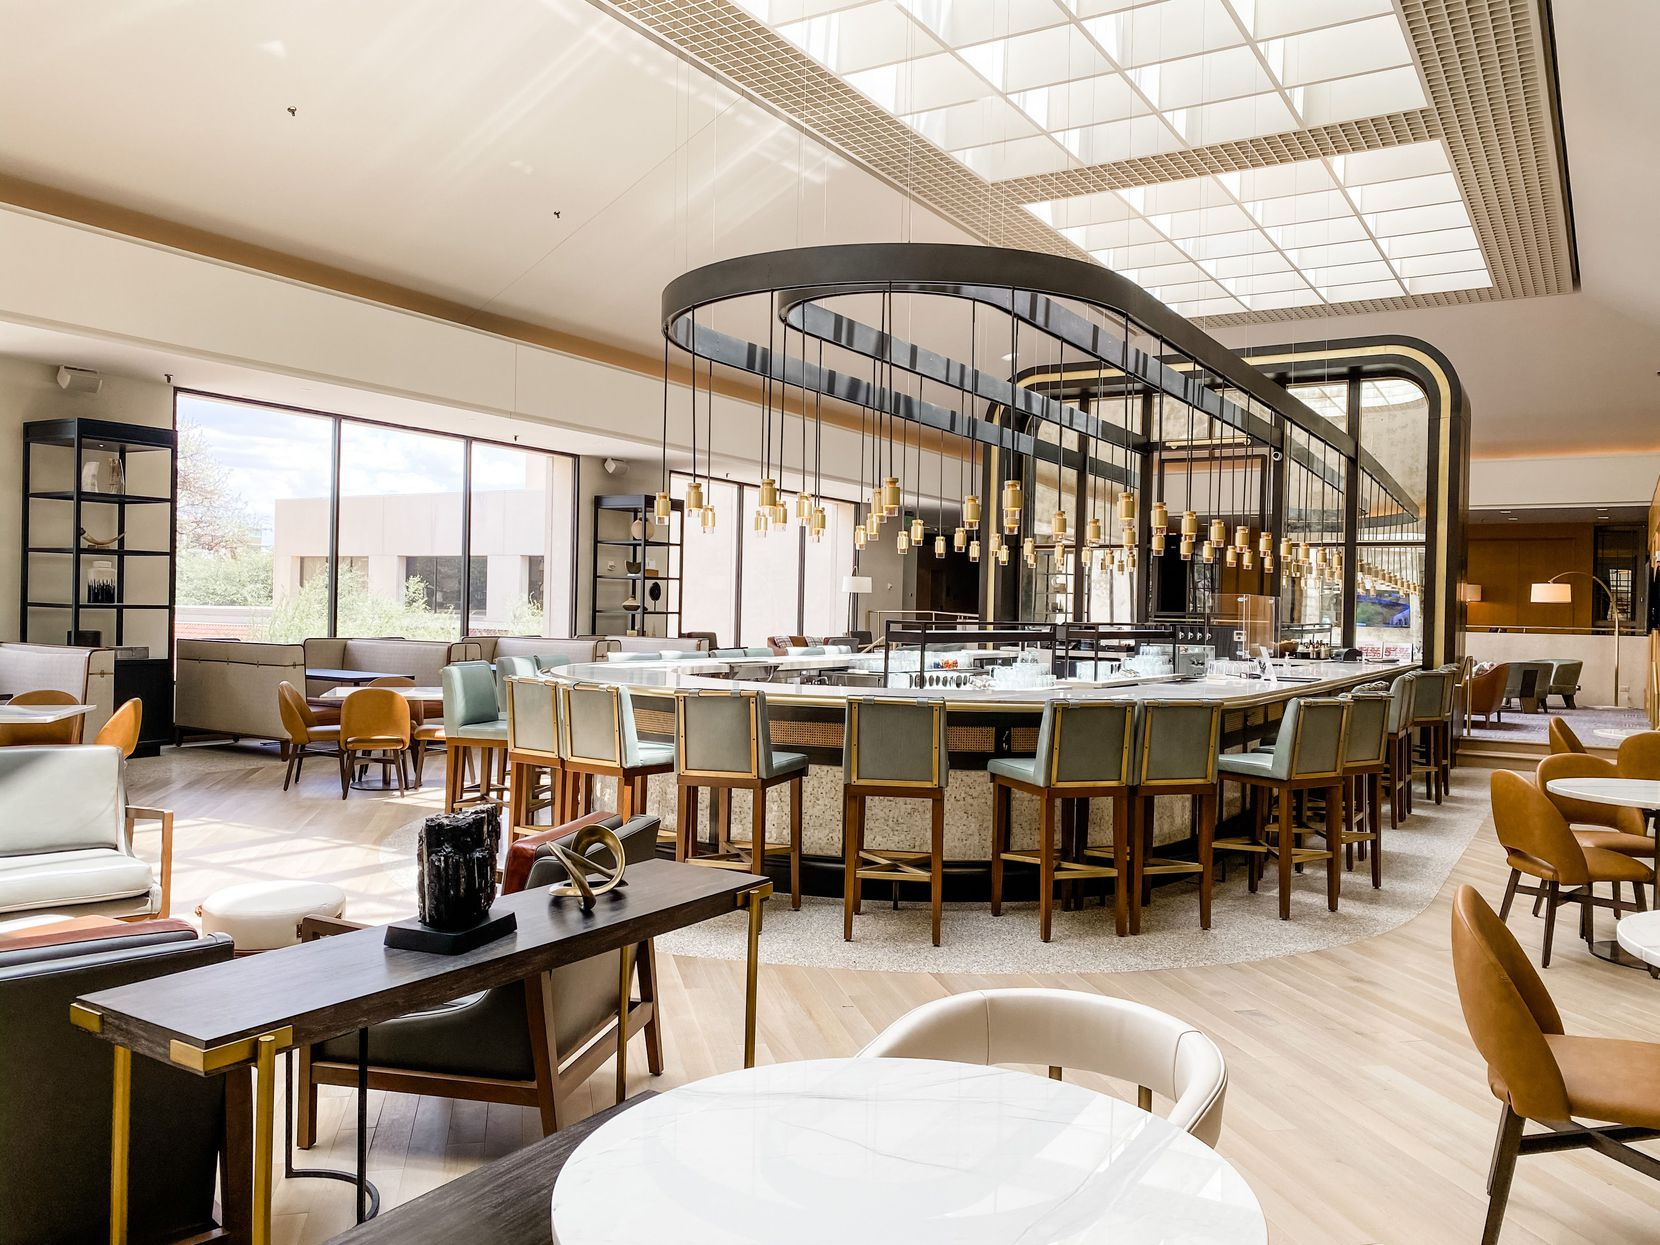 The Omni Las Colinas Hotel got several new dining options.